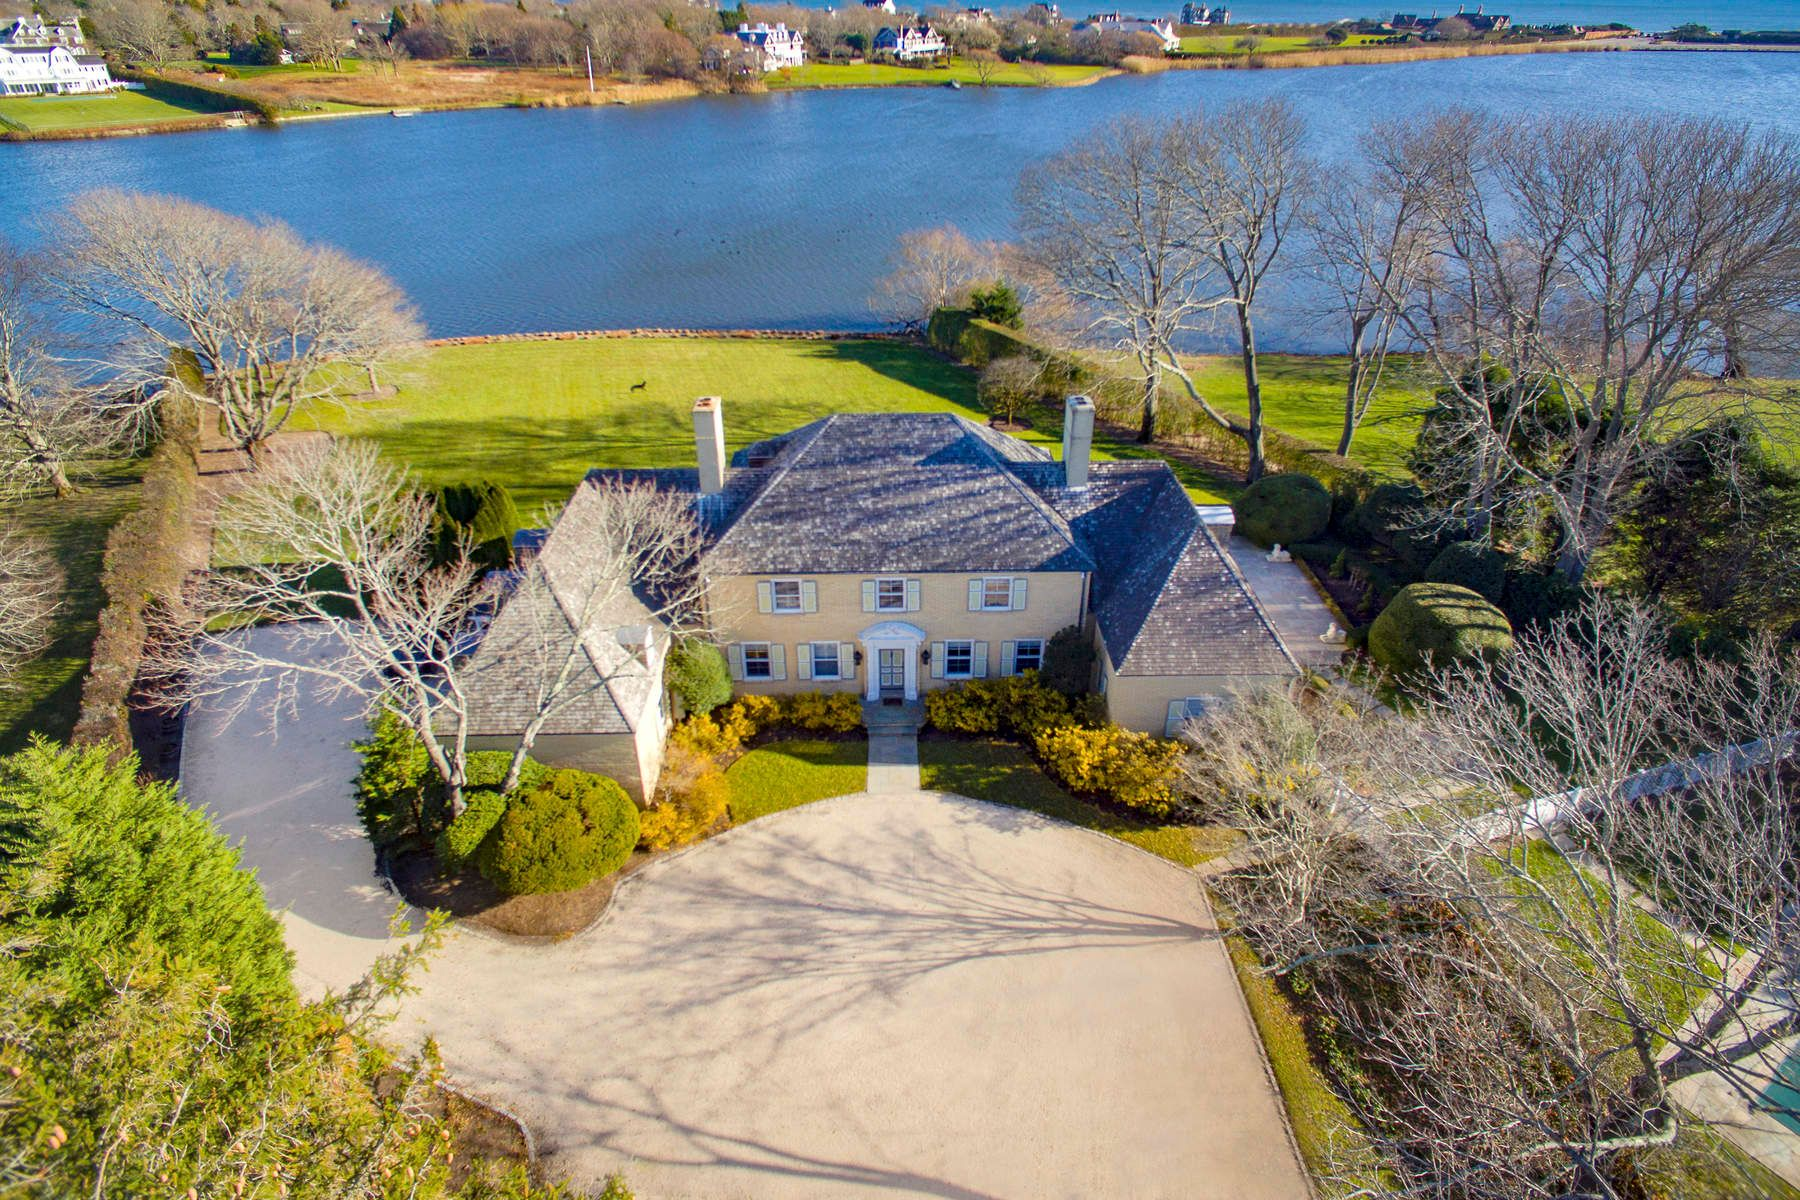 Single Family Homes for Sale at Lake Agawam Estate 310 First Neck Lane Southampton, New York 11968 United States